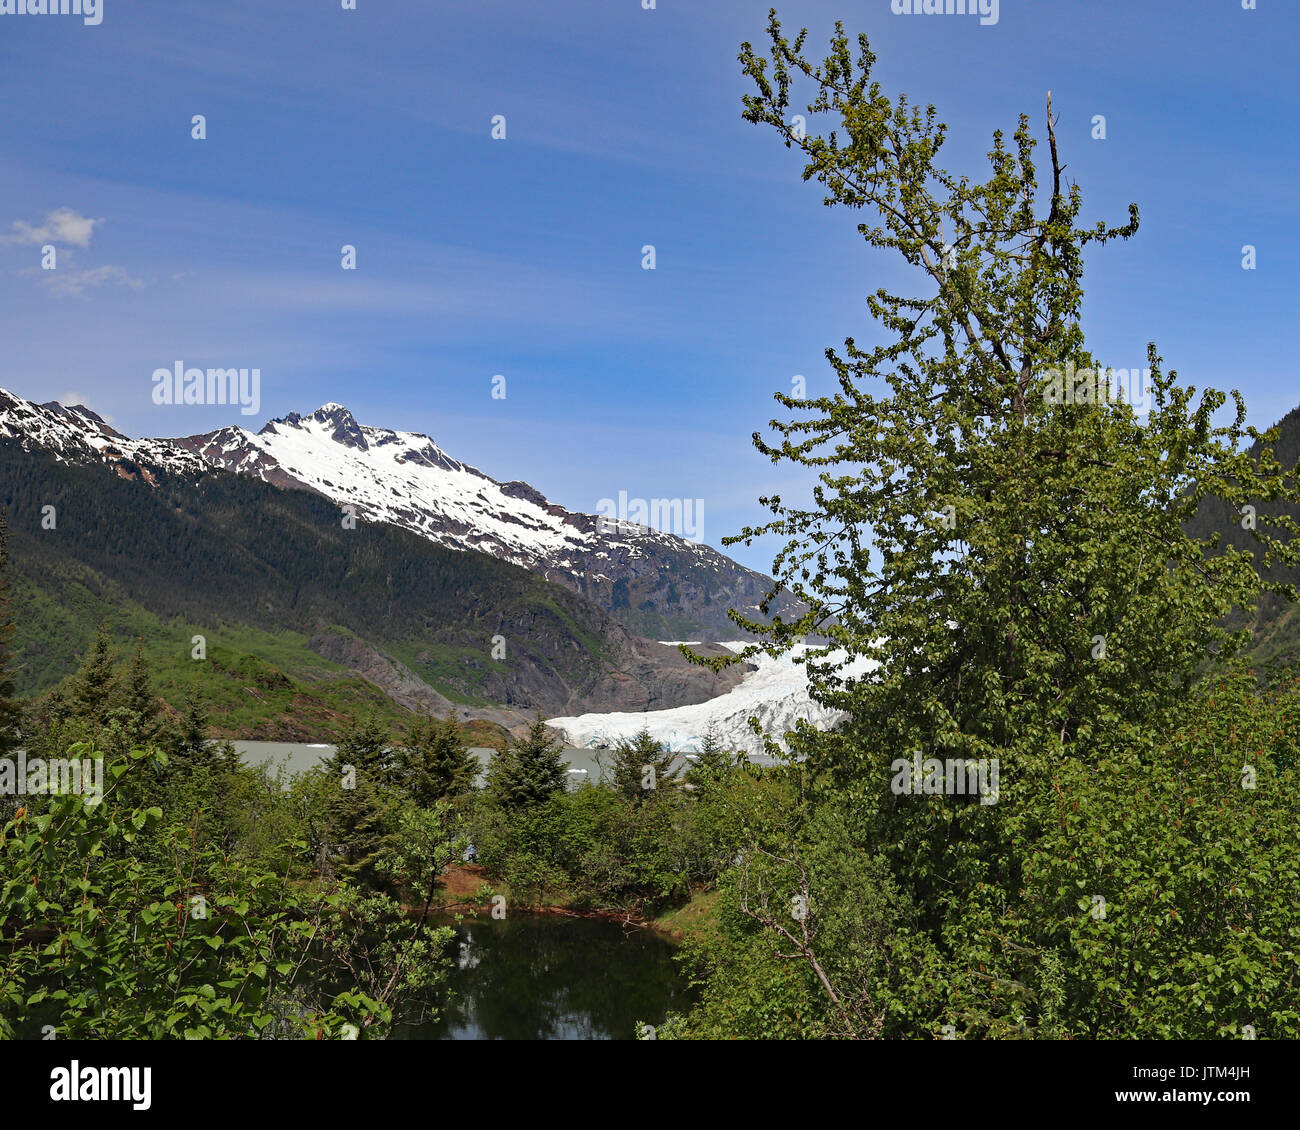 Mendenhall Glacier seen from the foot paths across the lake - Stock Image